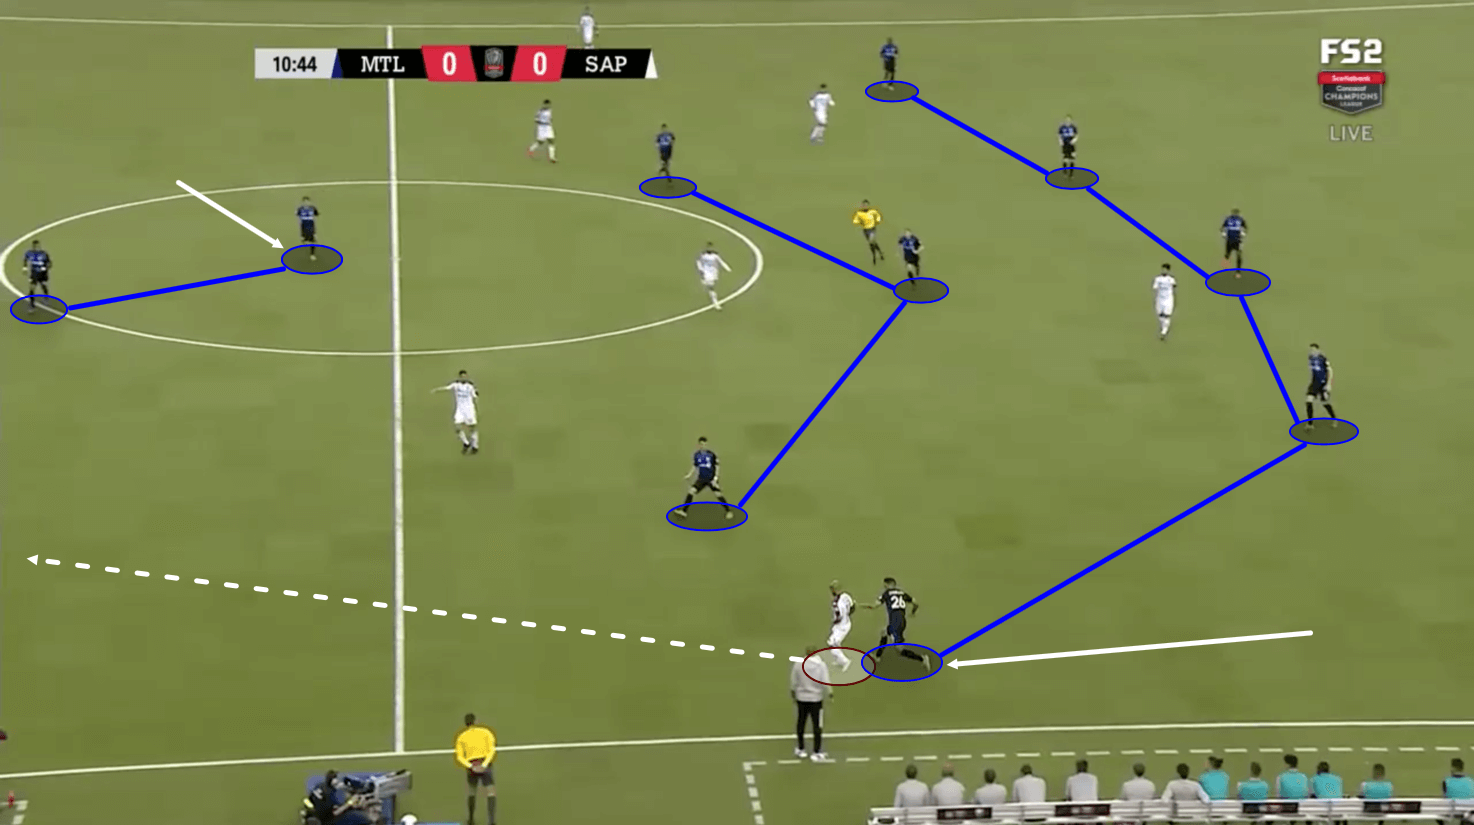 CONCACAF Champions League 2020: Montreal Impact vs Saprissa - tactical analysis tactics